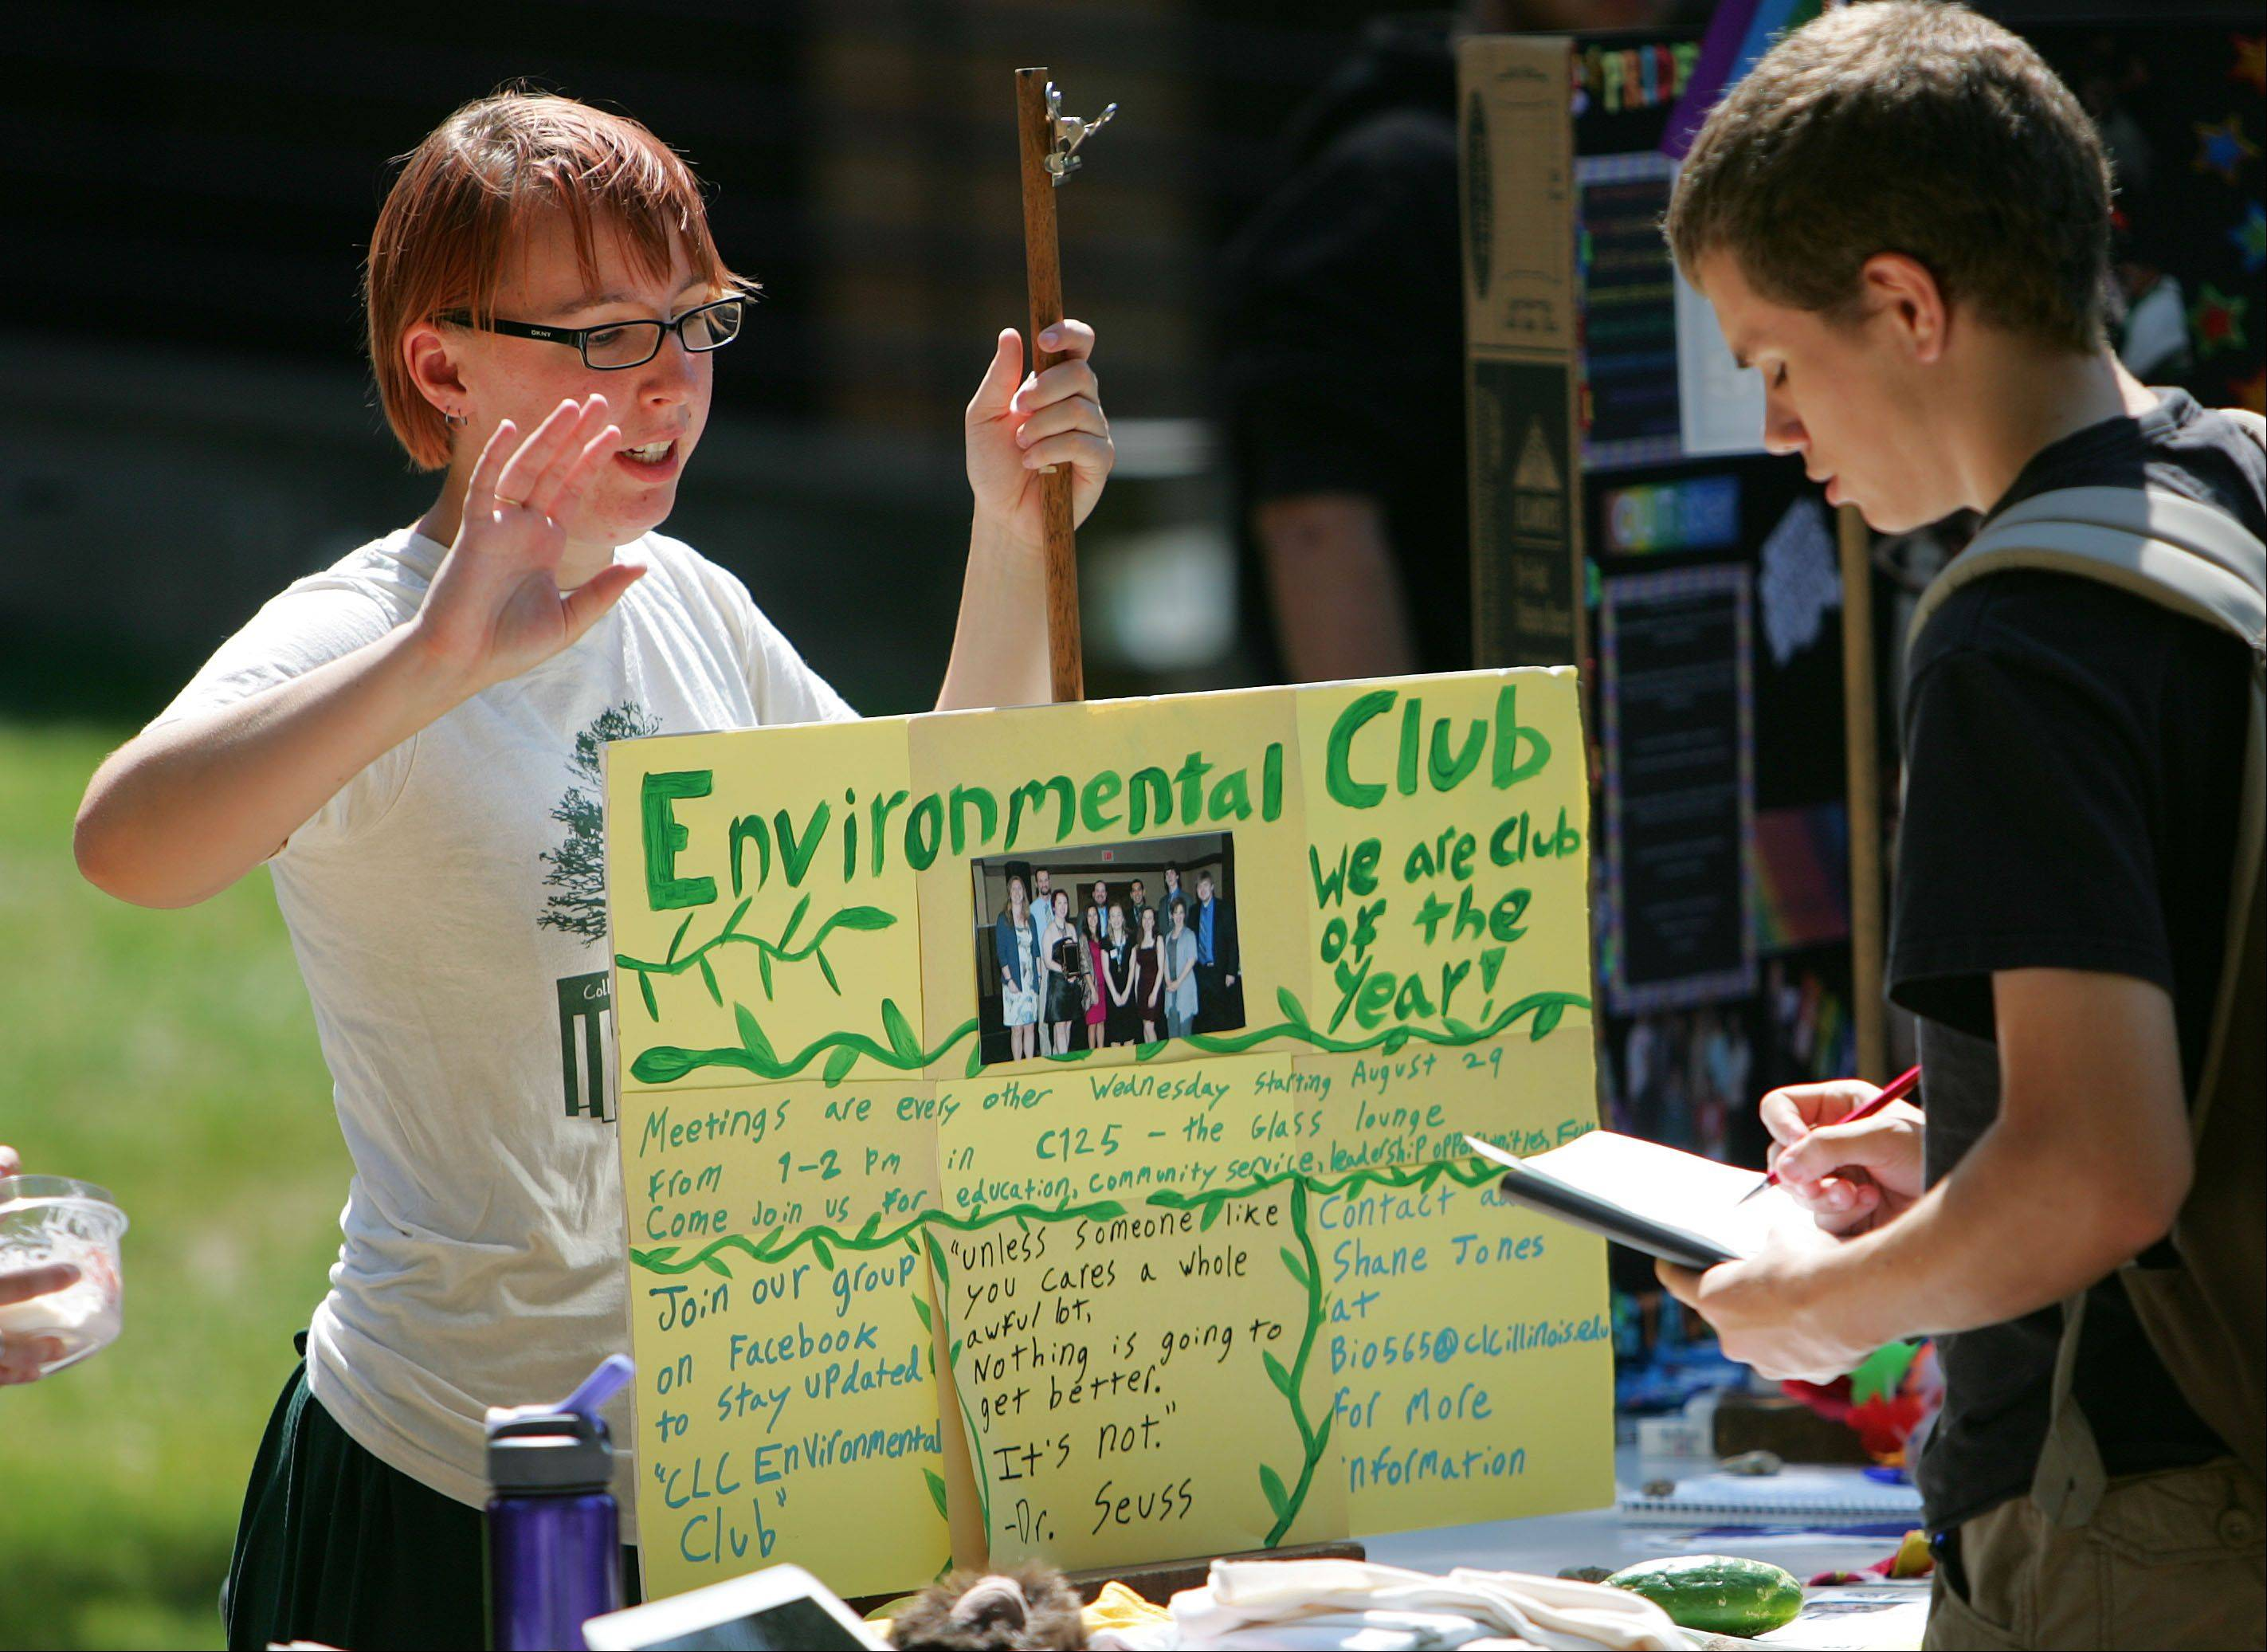 Brian Messer of Fox Lake, right, inquires about the Environmental Club to Sarah Gocek of Round Lake Park during a student activities fair at The College of Lake County Thursday.